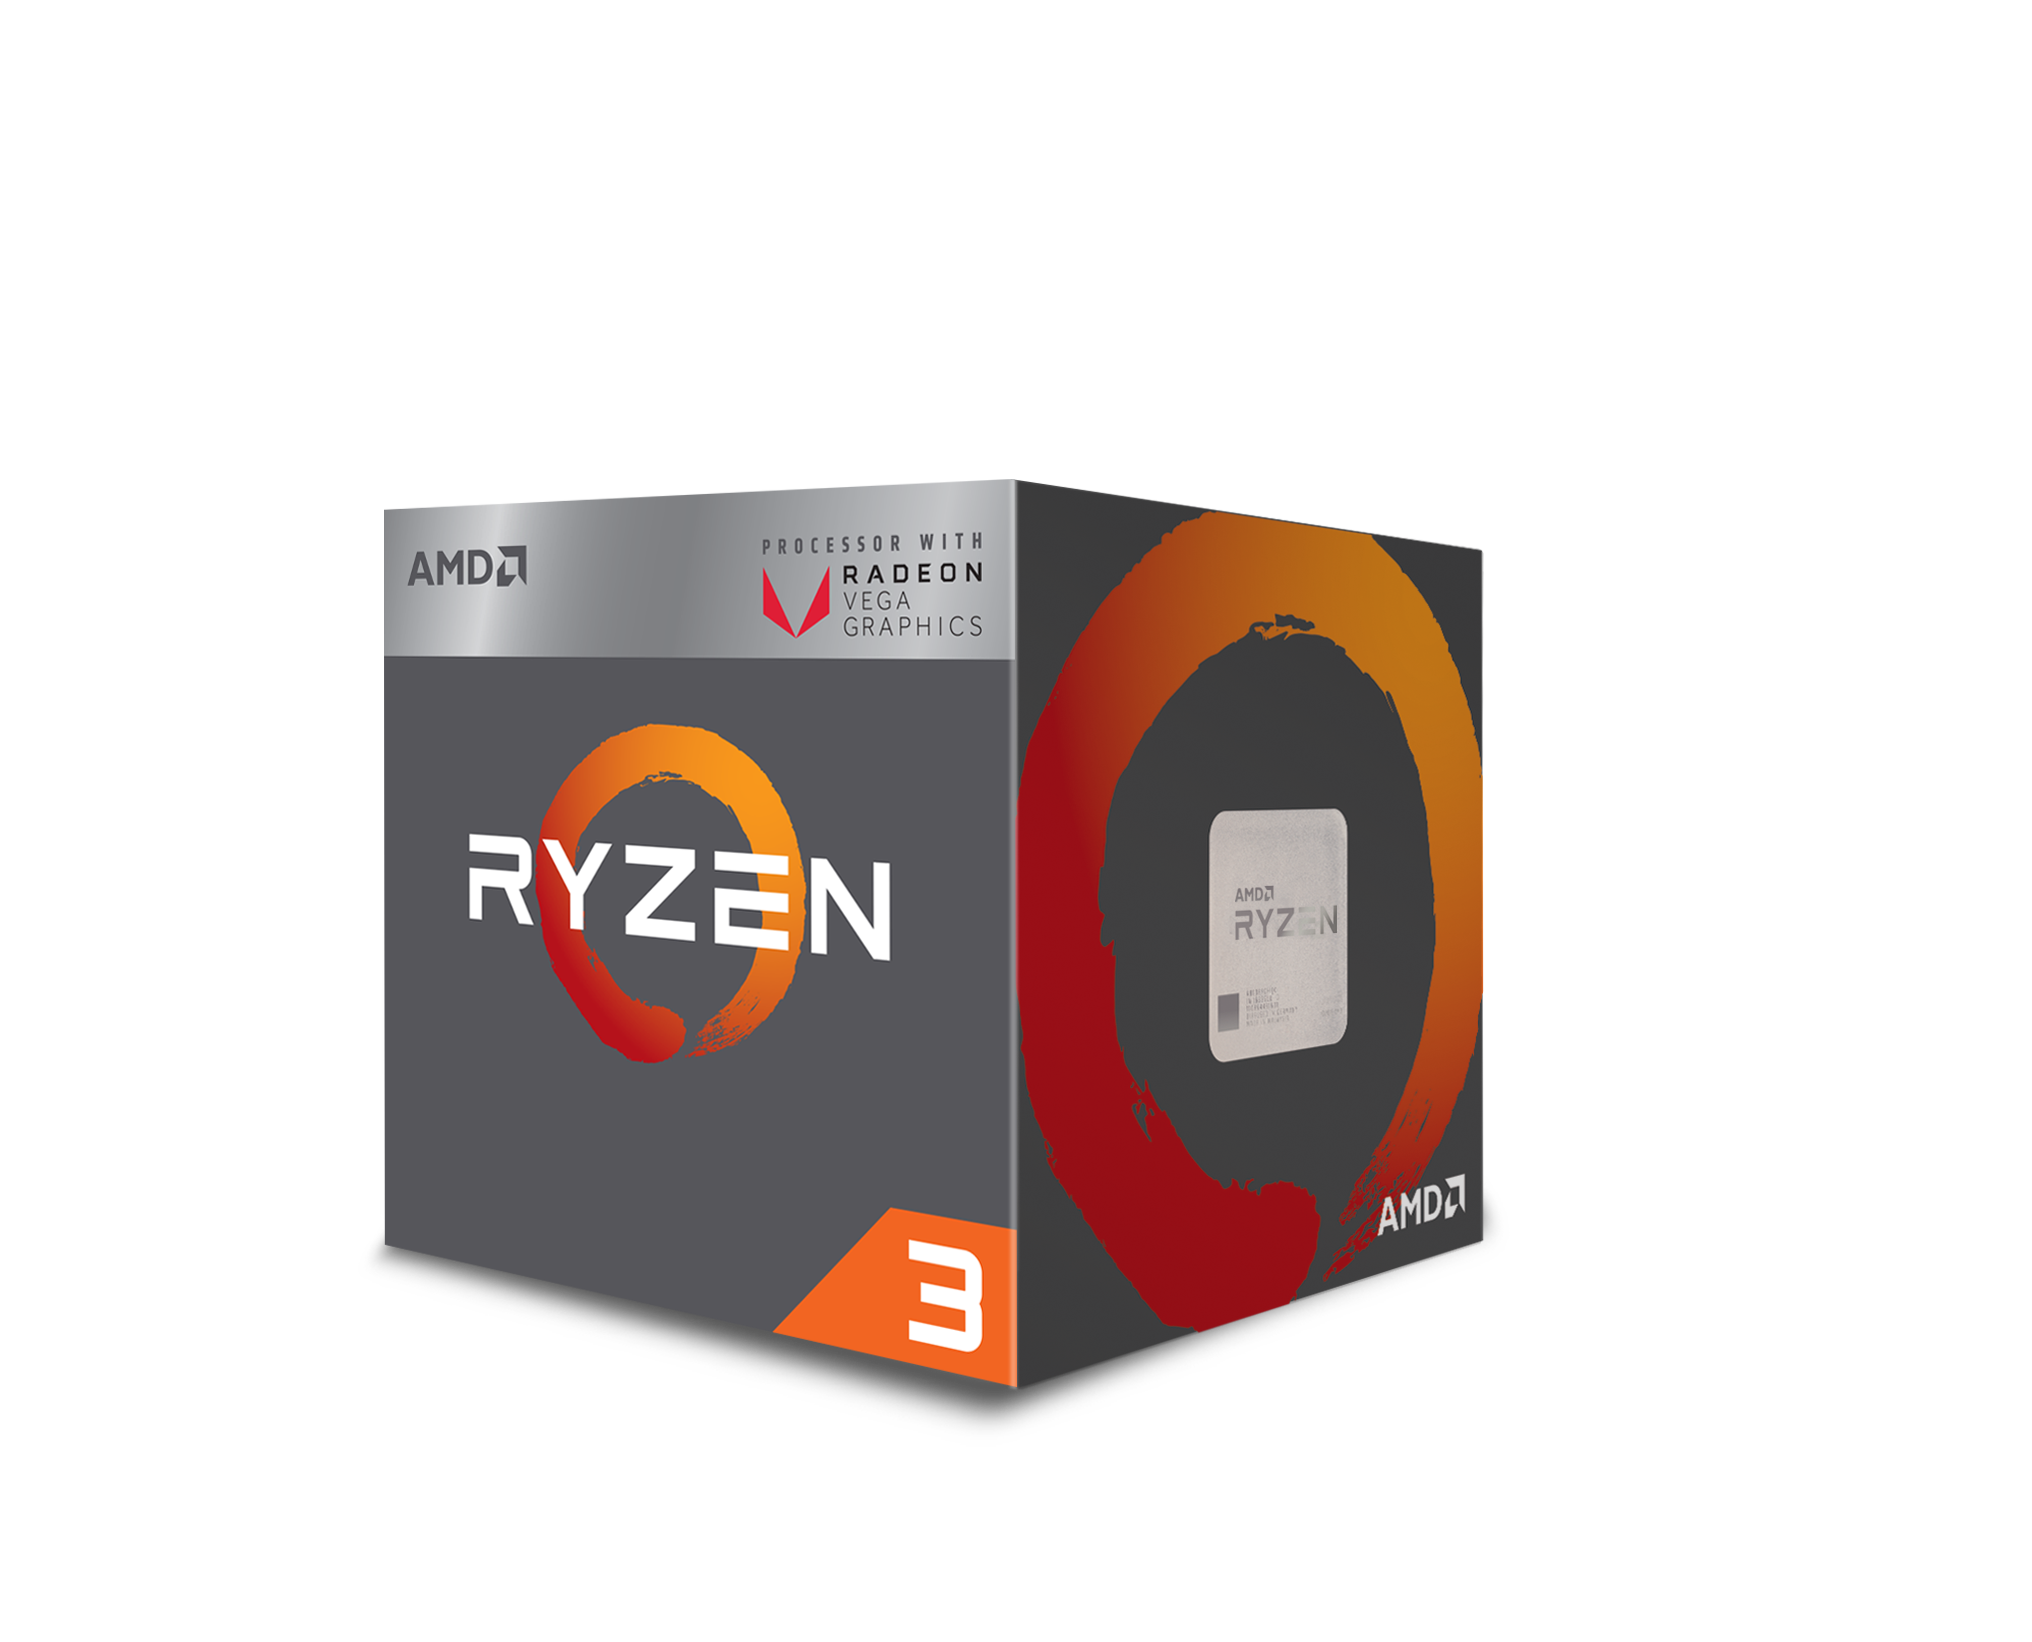 Reviewed Amd Ryzen 2200g And 2400g With Vega Pc Tech Reviews Australia